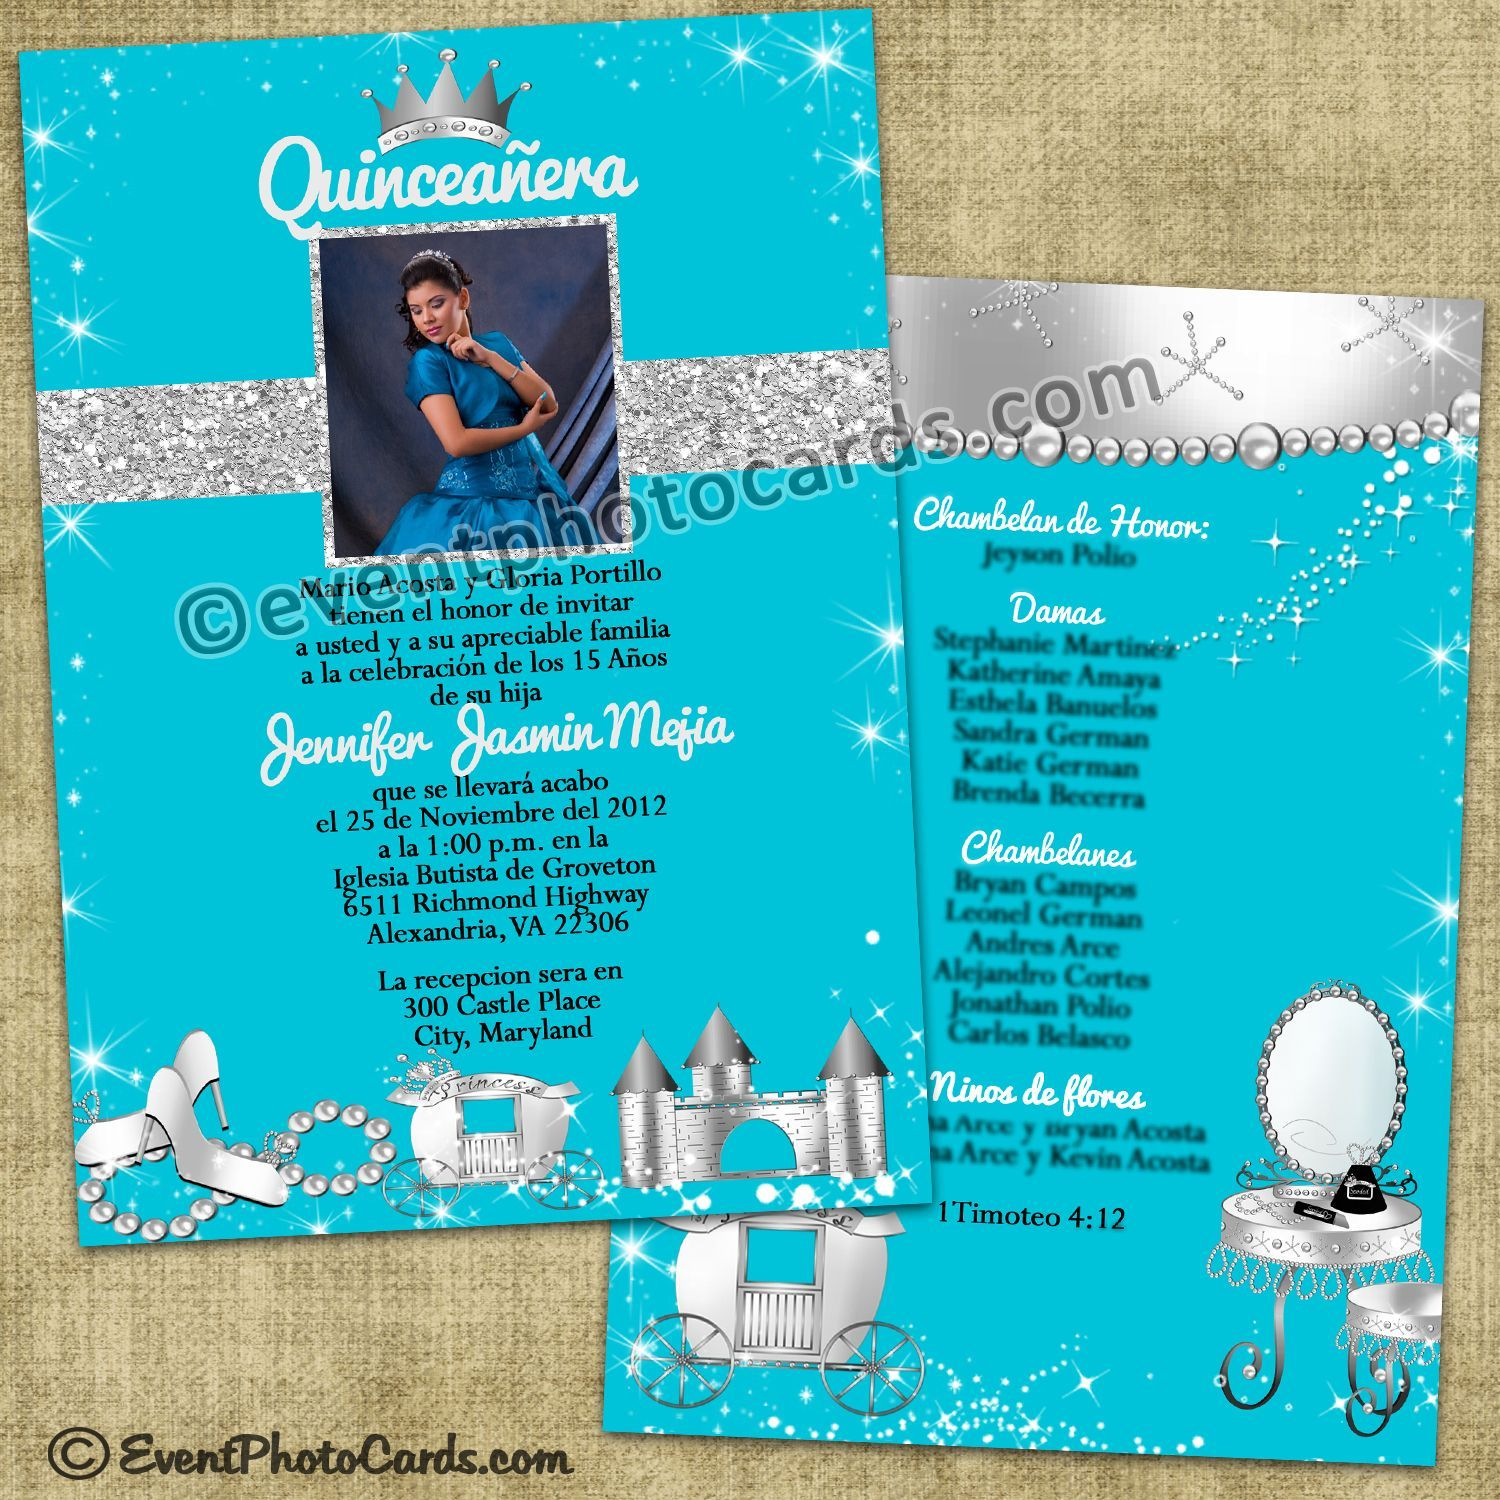 17 Best images about Princess Quinceanera Invitations on Pinterest ...